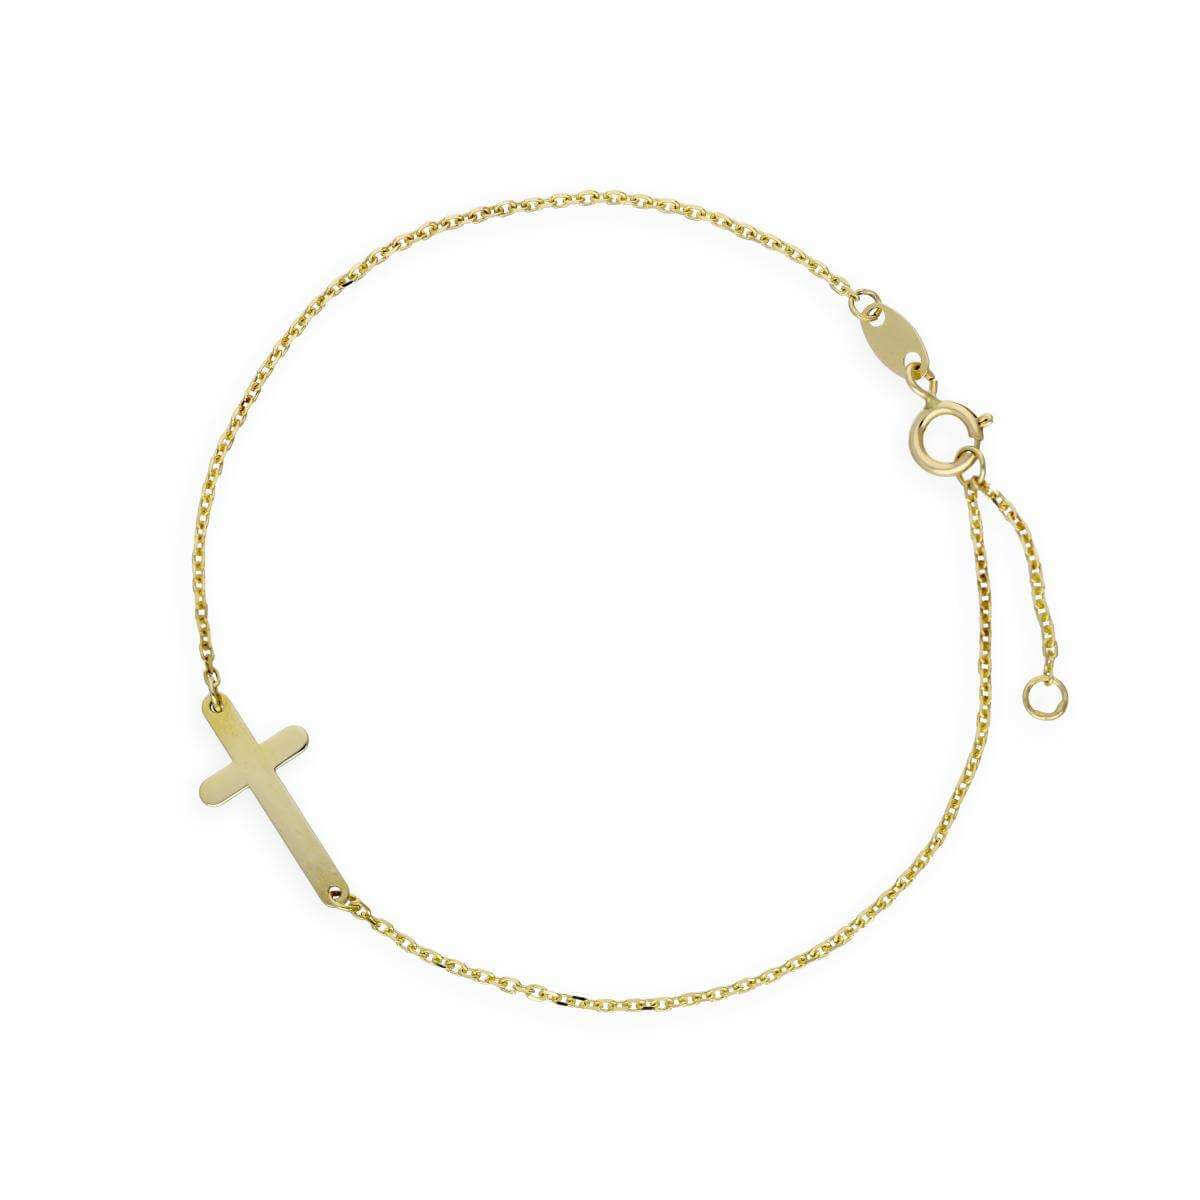 9ct Gold Cross Bracelet 5.5 Inches 6.5 Inches 7 Inches